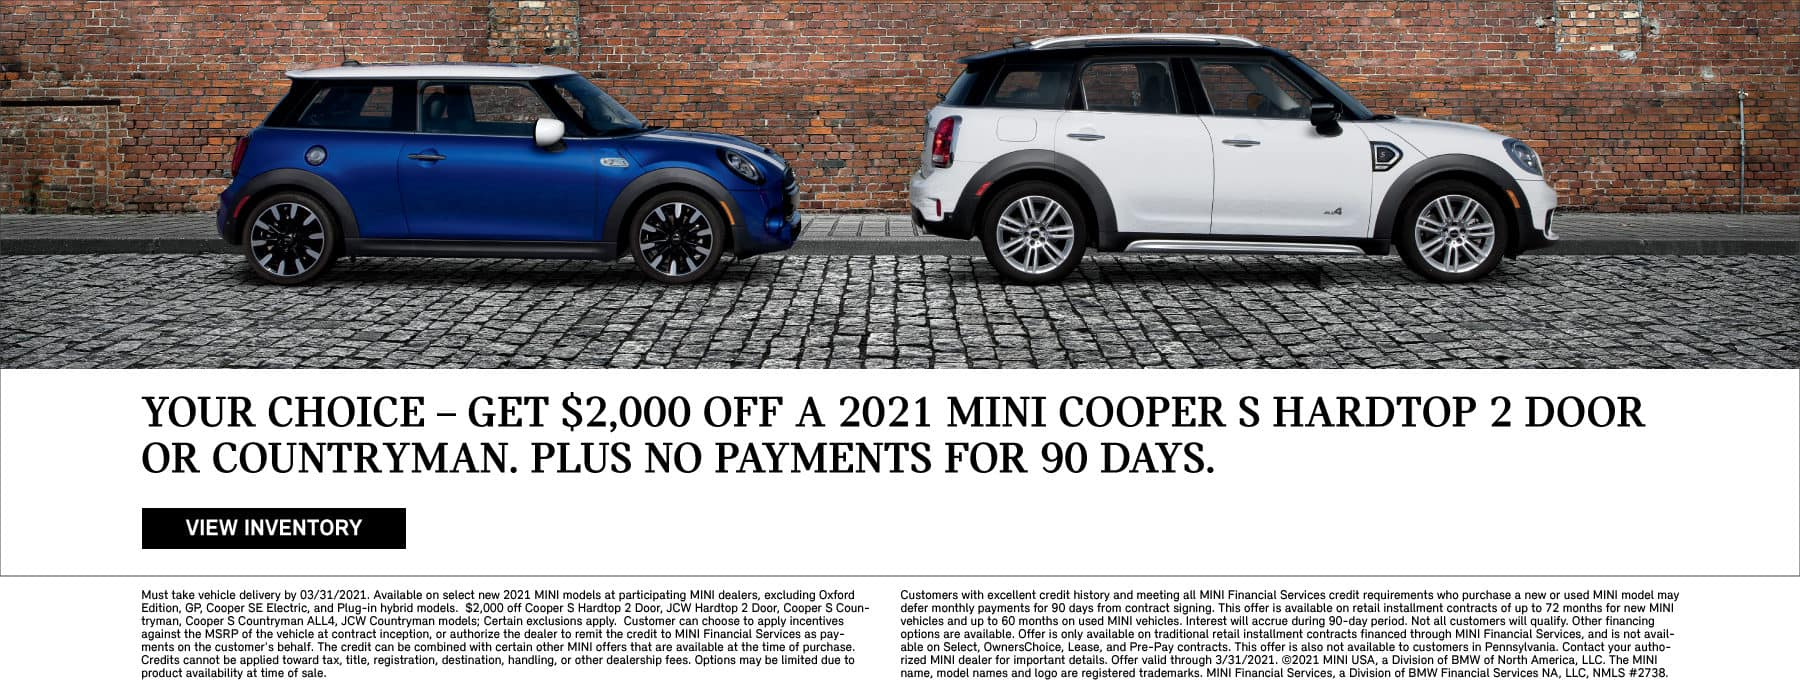 Get $2,000 off a 2021 mini cooper s hardtop 2 door or countryman.